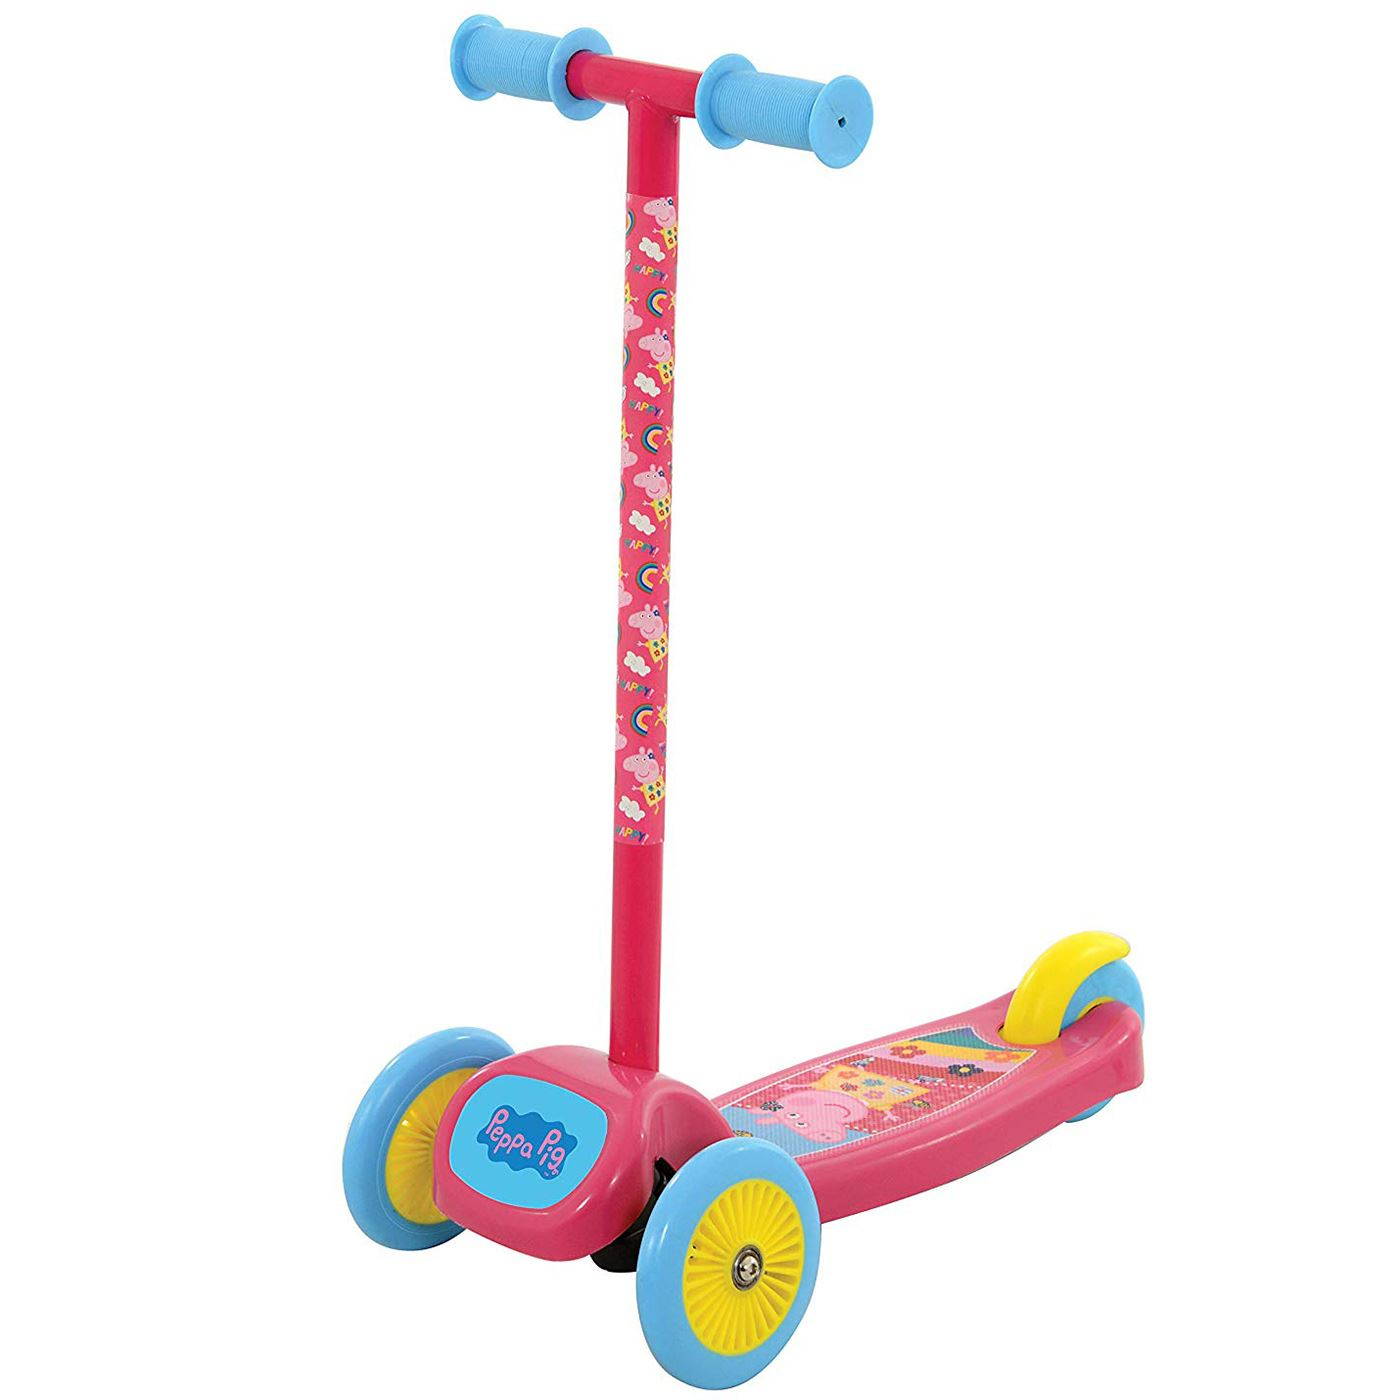 Details about peppa pig tilt n turn scooter with 3 wide wheels kids girls